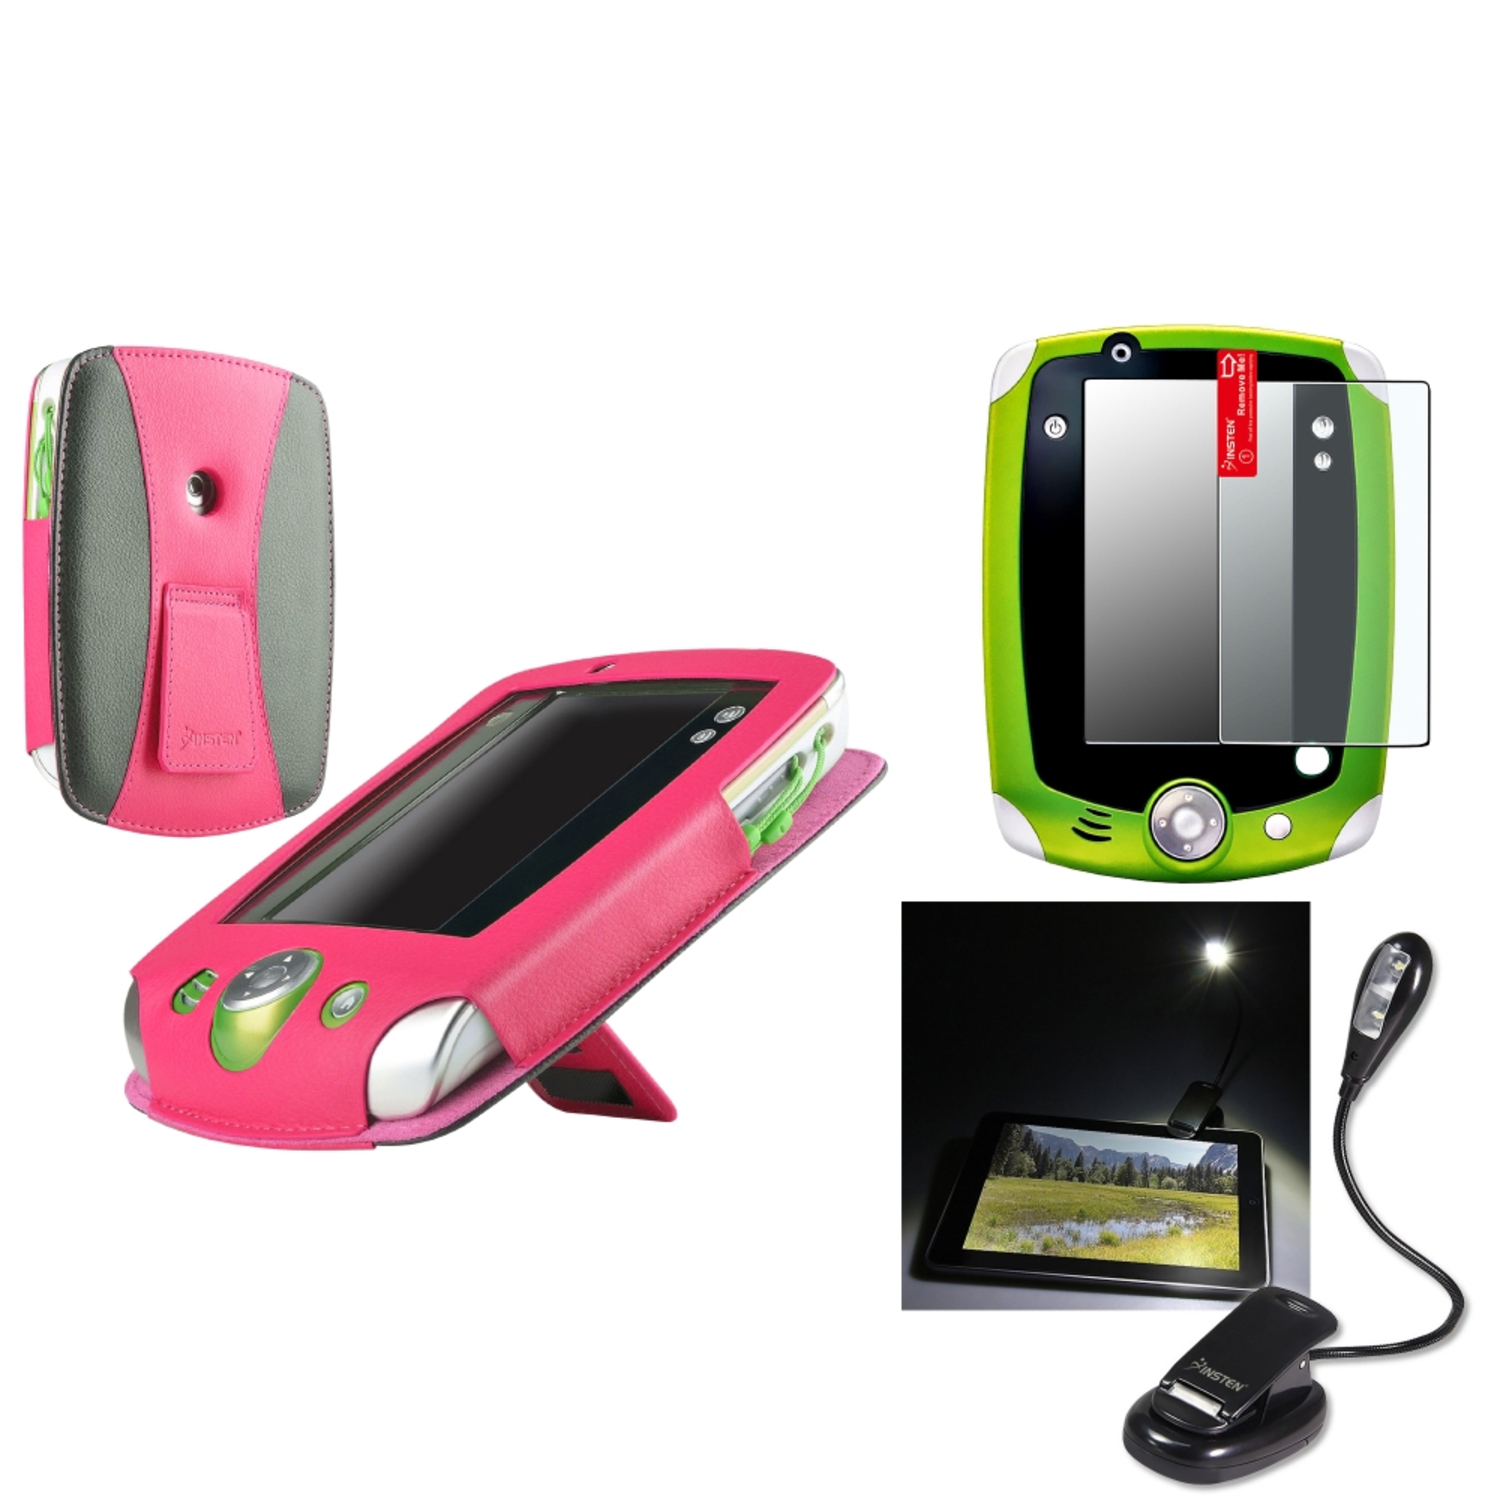 Insten Pink w/ Stand Case+3x Matte Protector+Light LED For LeapFrog Leappad 2